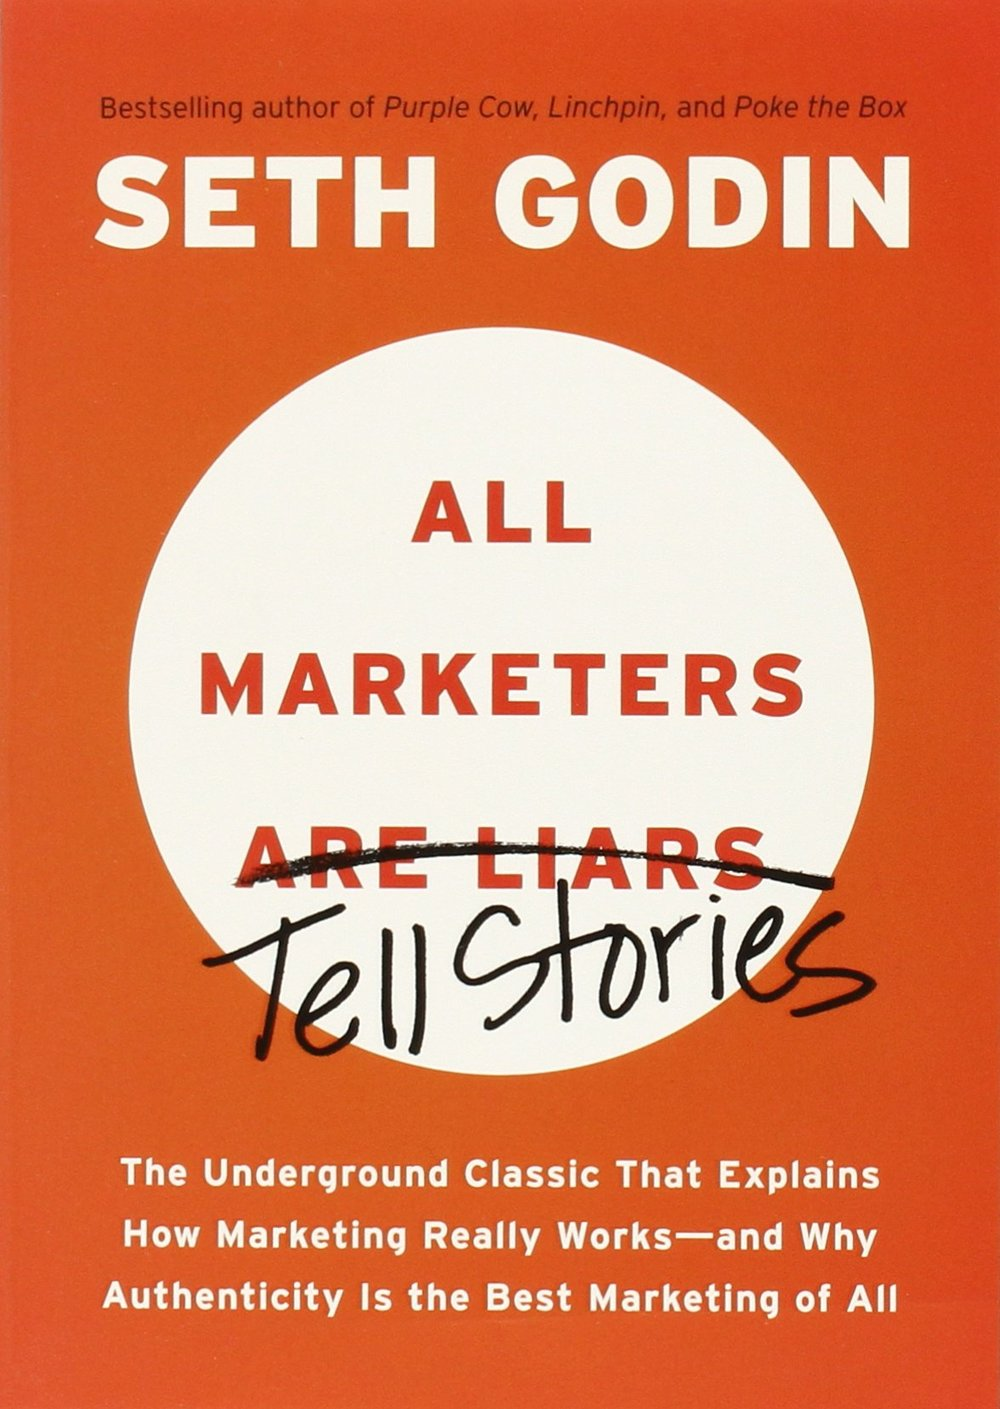 All Marketers Are Liars by Seth Godin - Great marketers tell a story. Will you market yourself a certain way? The key here is to be 'authentic' rather than honest! Come on, we know the major successful companies today lie and lie in their ads, yet they still make millions!